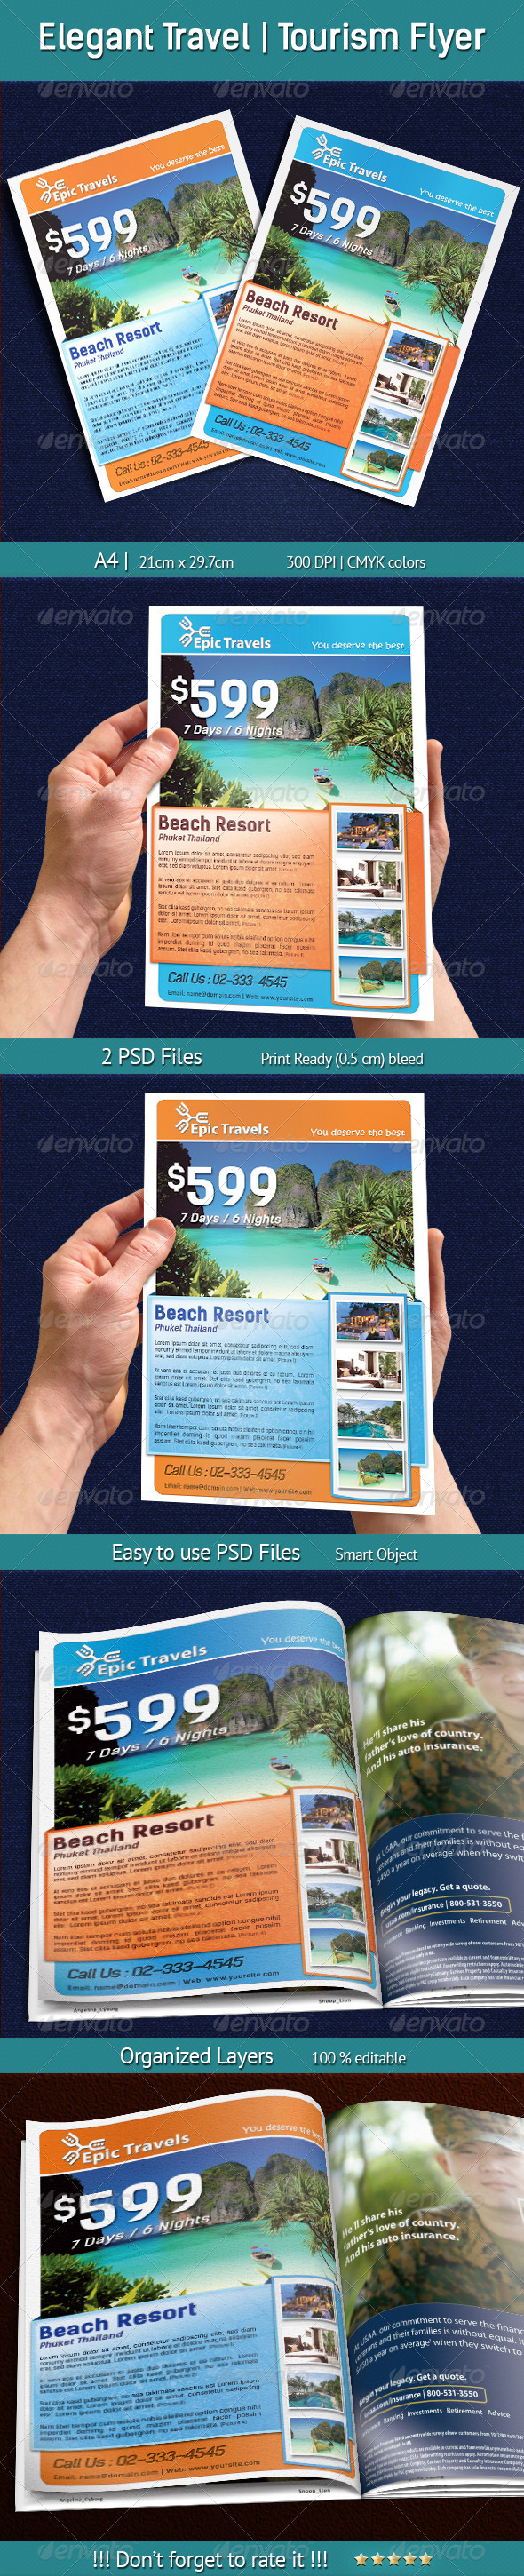 Elegant Travel | Tourism Flyer - Holiday Greeting Cards